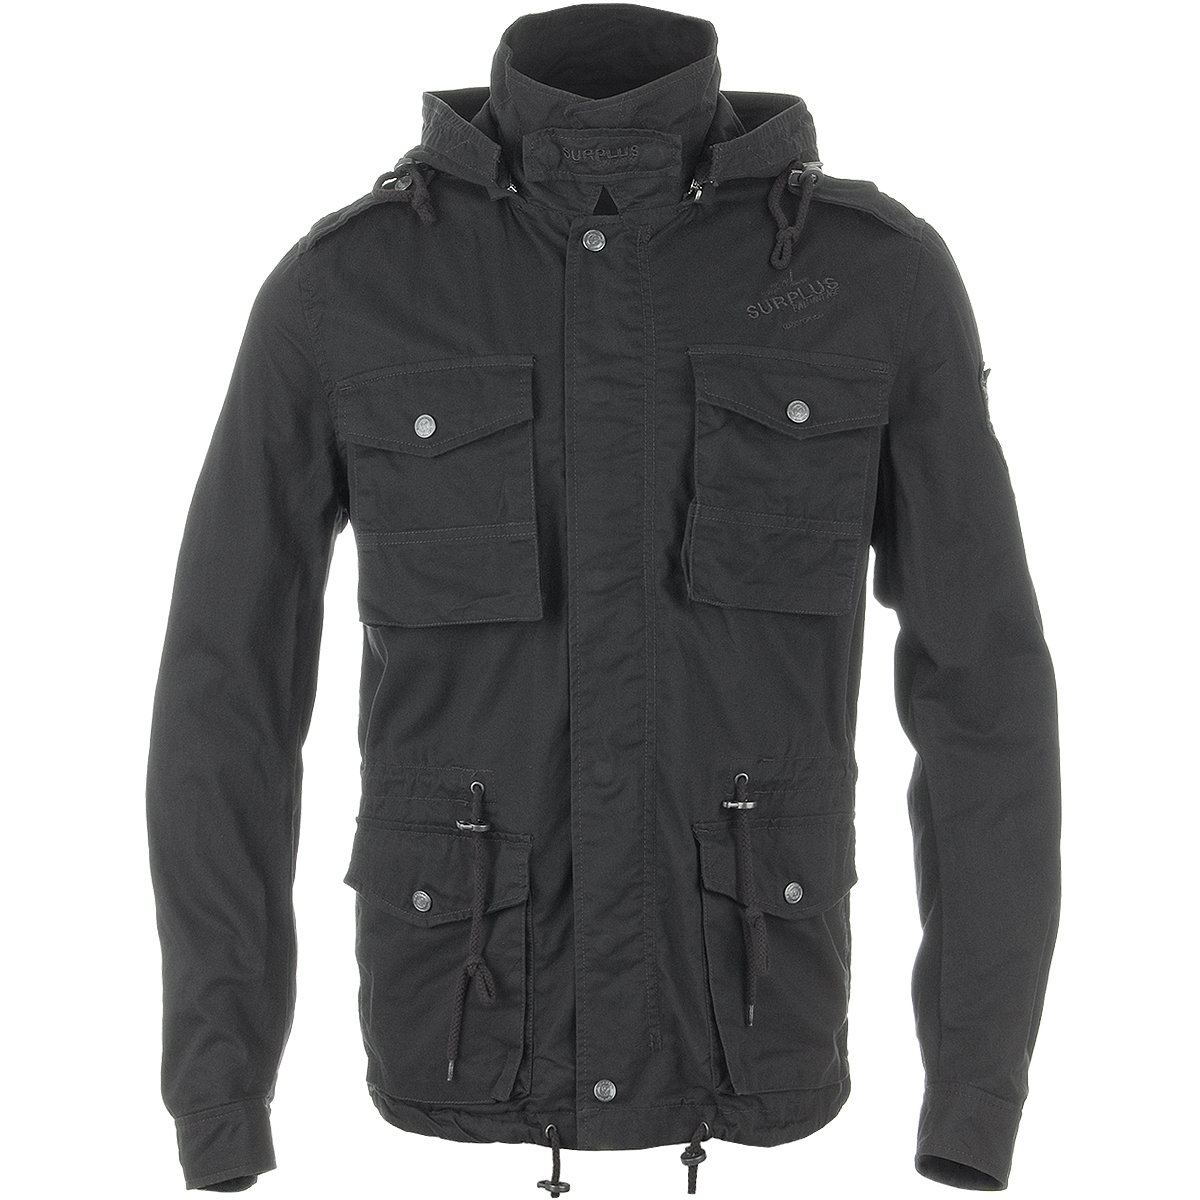 Men's Parka Coats and Jackets Since a coat lasts longer than one season, choosing a new one is an important decision. Style and functionality are the main considerations involved in your choice.